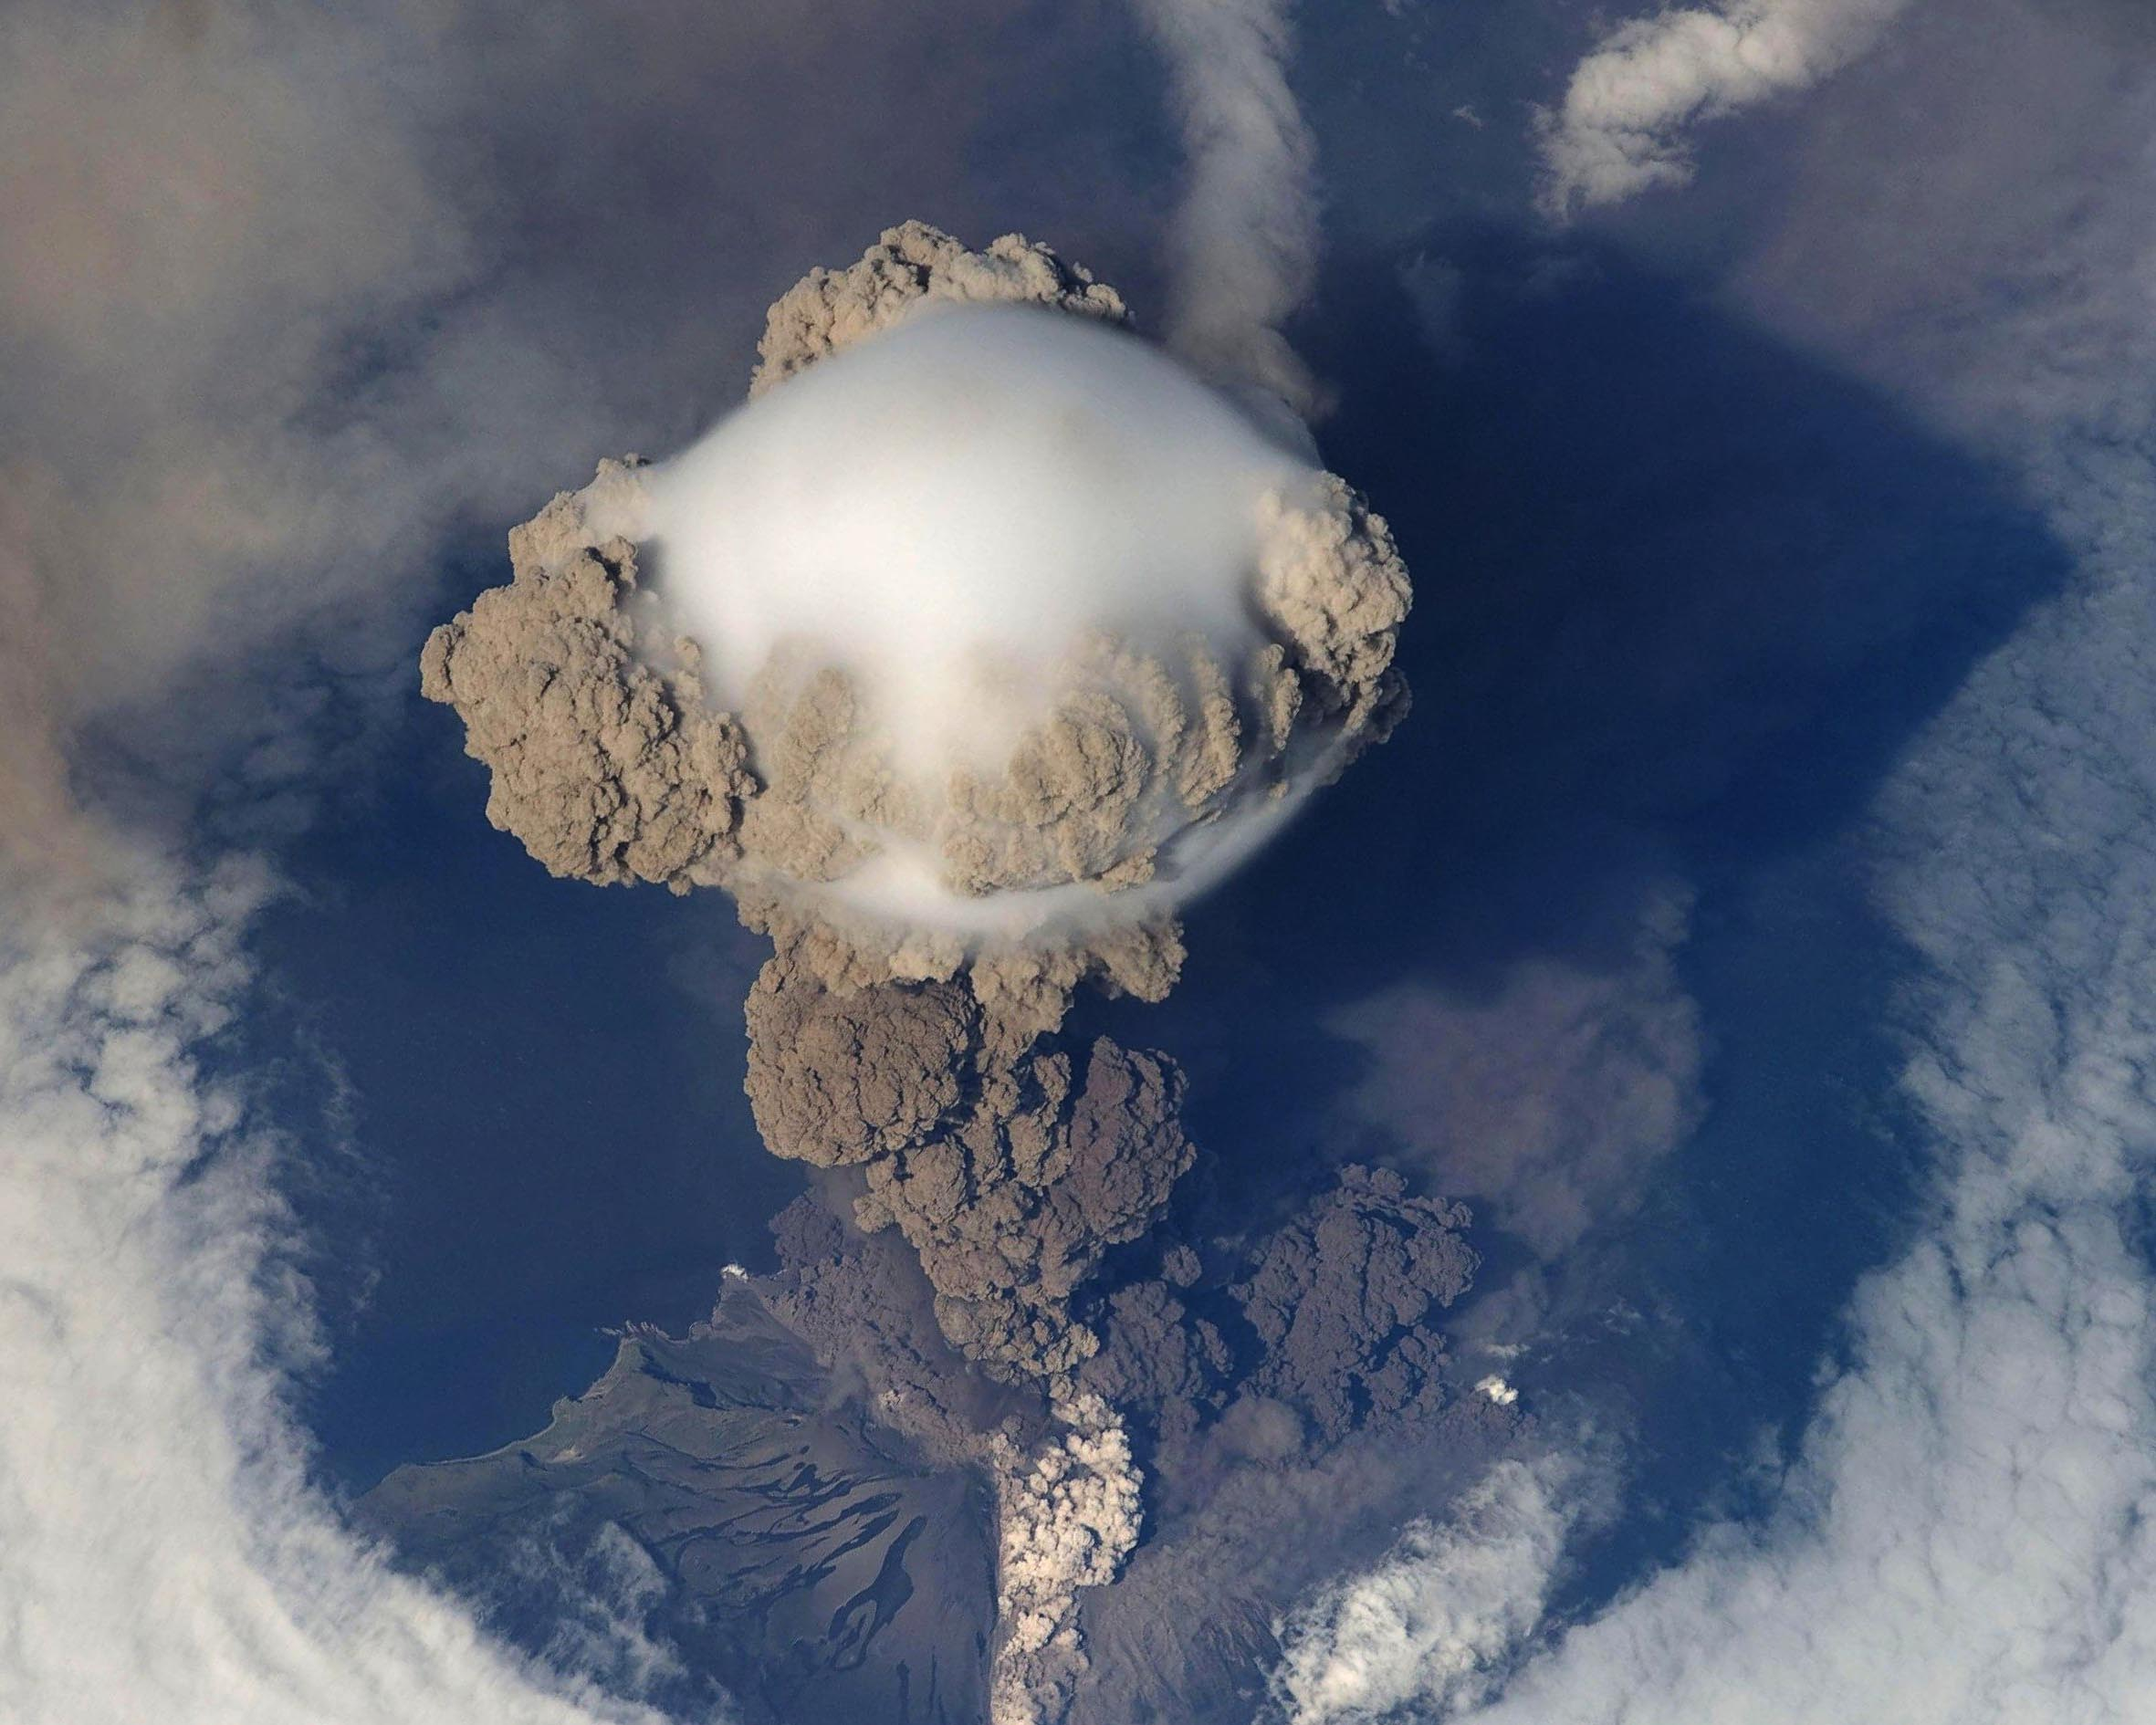 Volcanic explosions are a natural disasters one has to deal with.